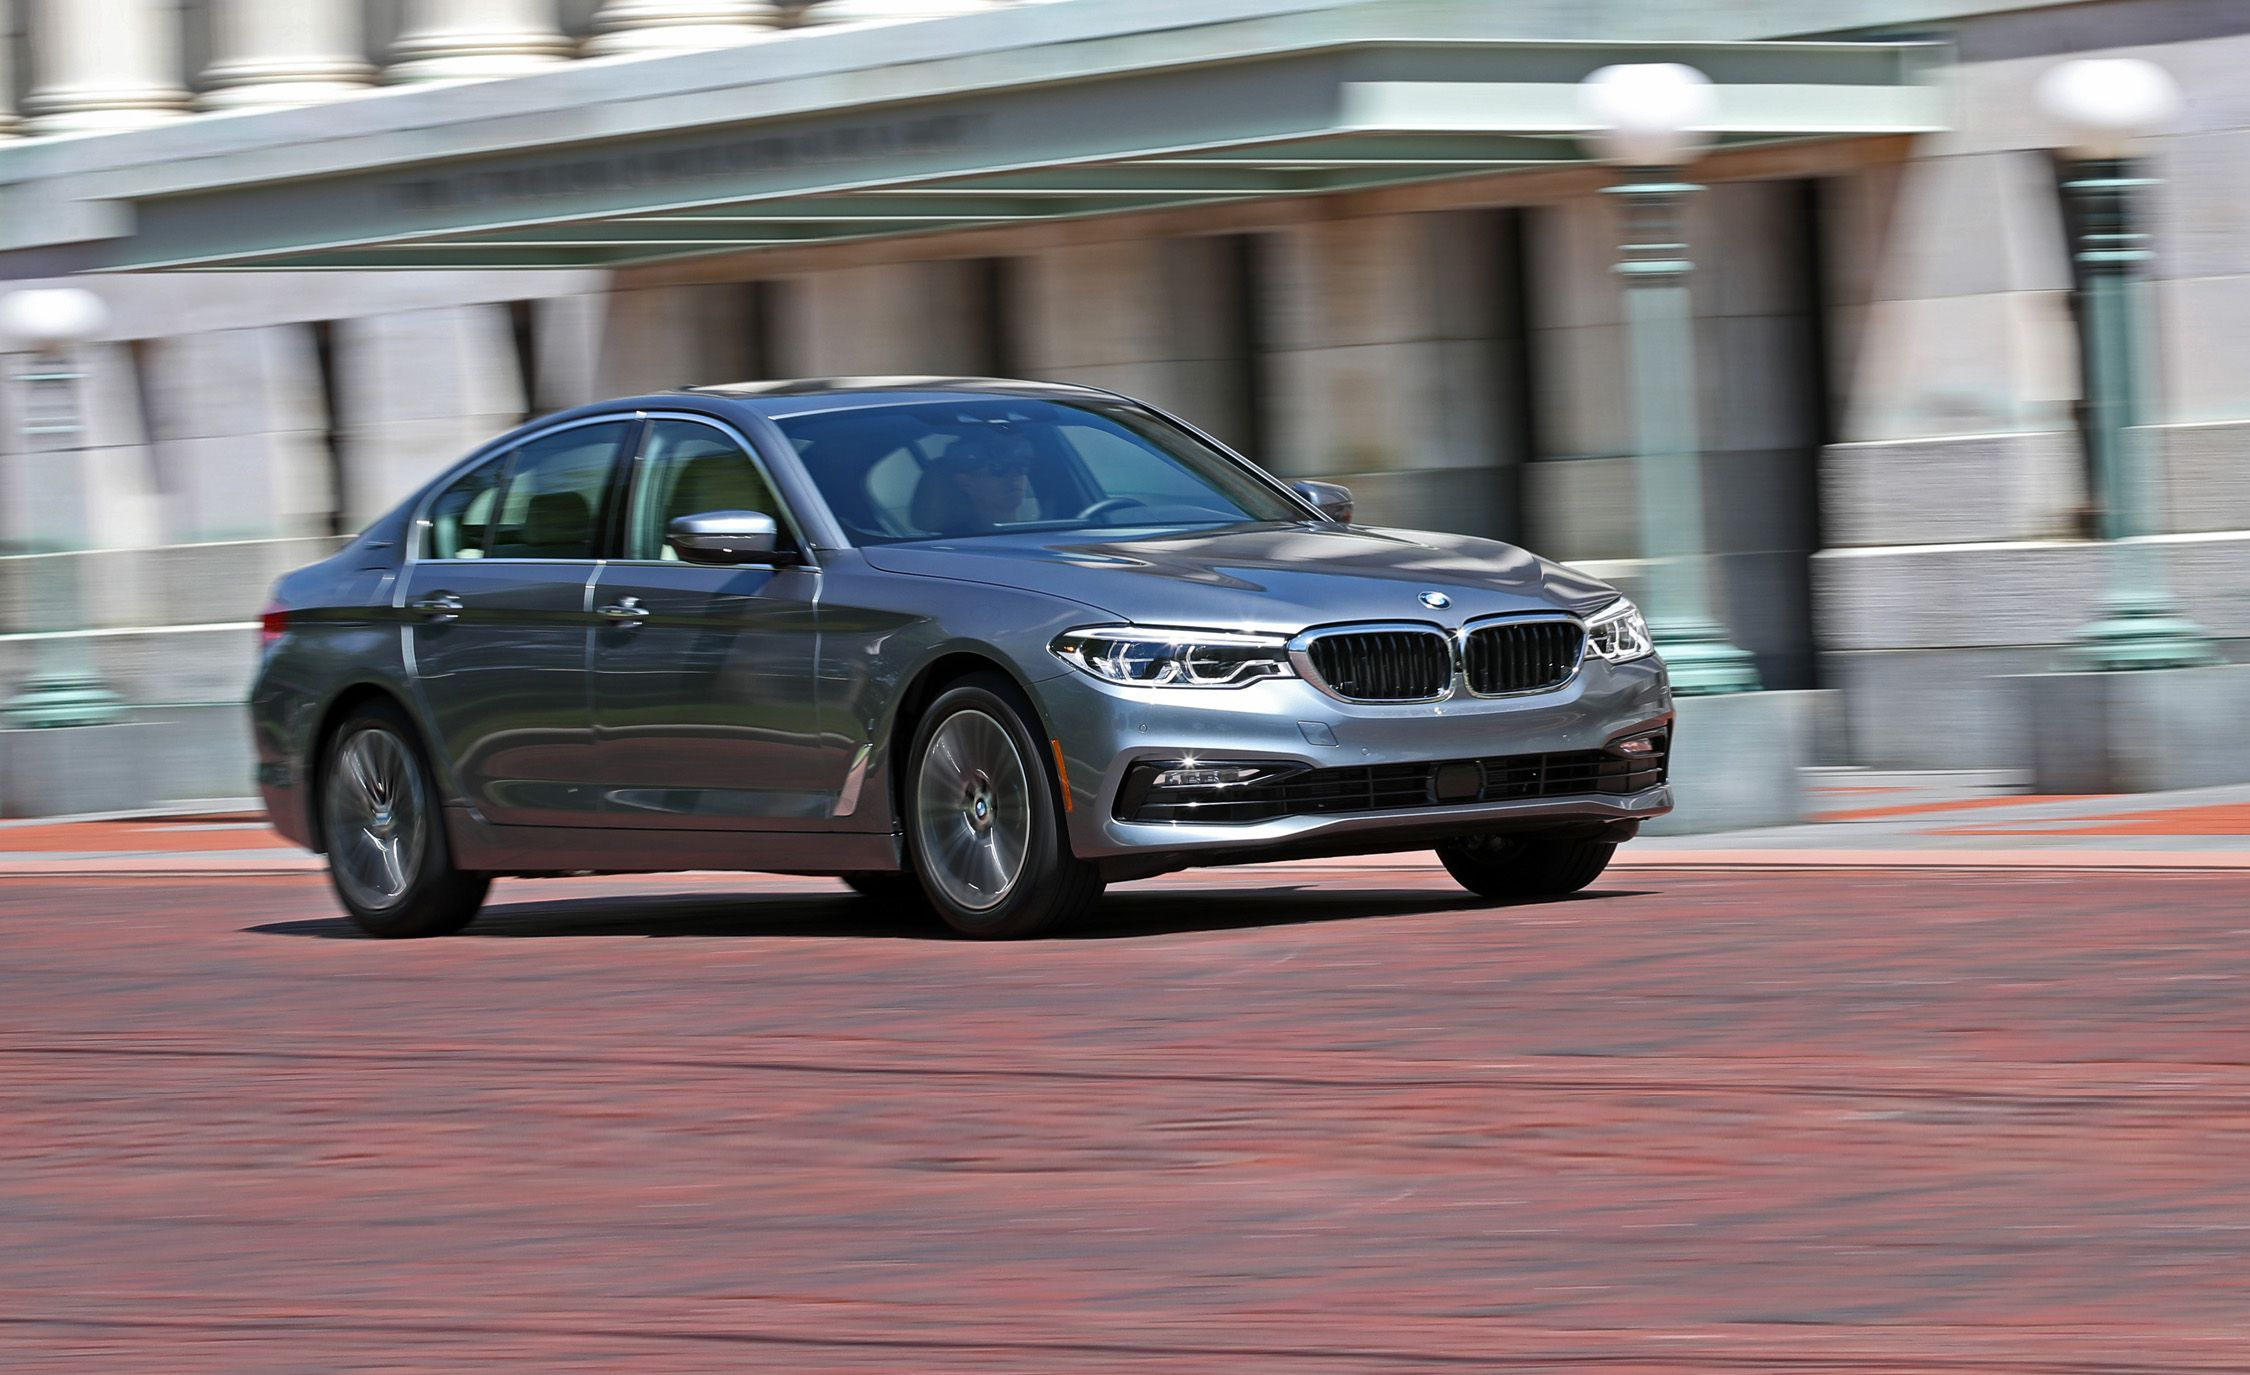 2018 Bmw 530e Xdrive Plug In Hybrid